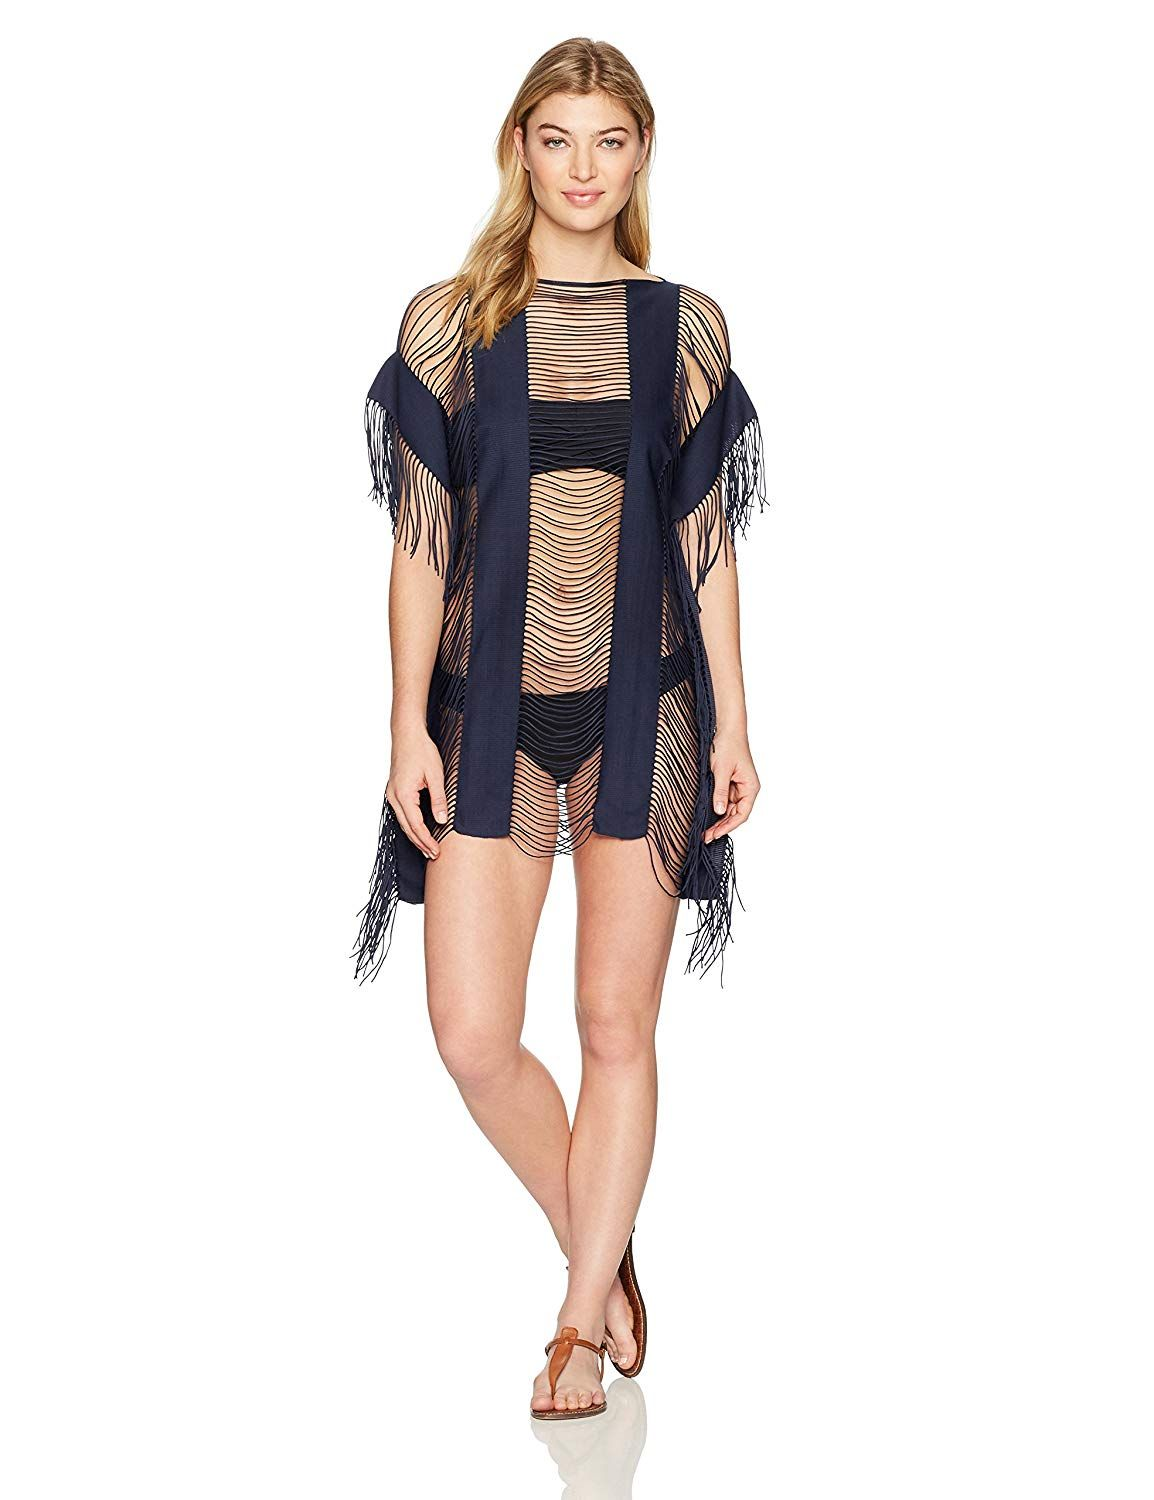 a5865011c612b PilyQ Women's Monique Sexy Cover Up Dress at Amazon Women's Clothing store: